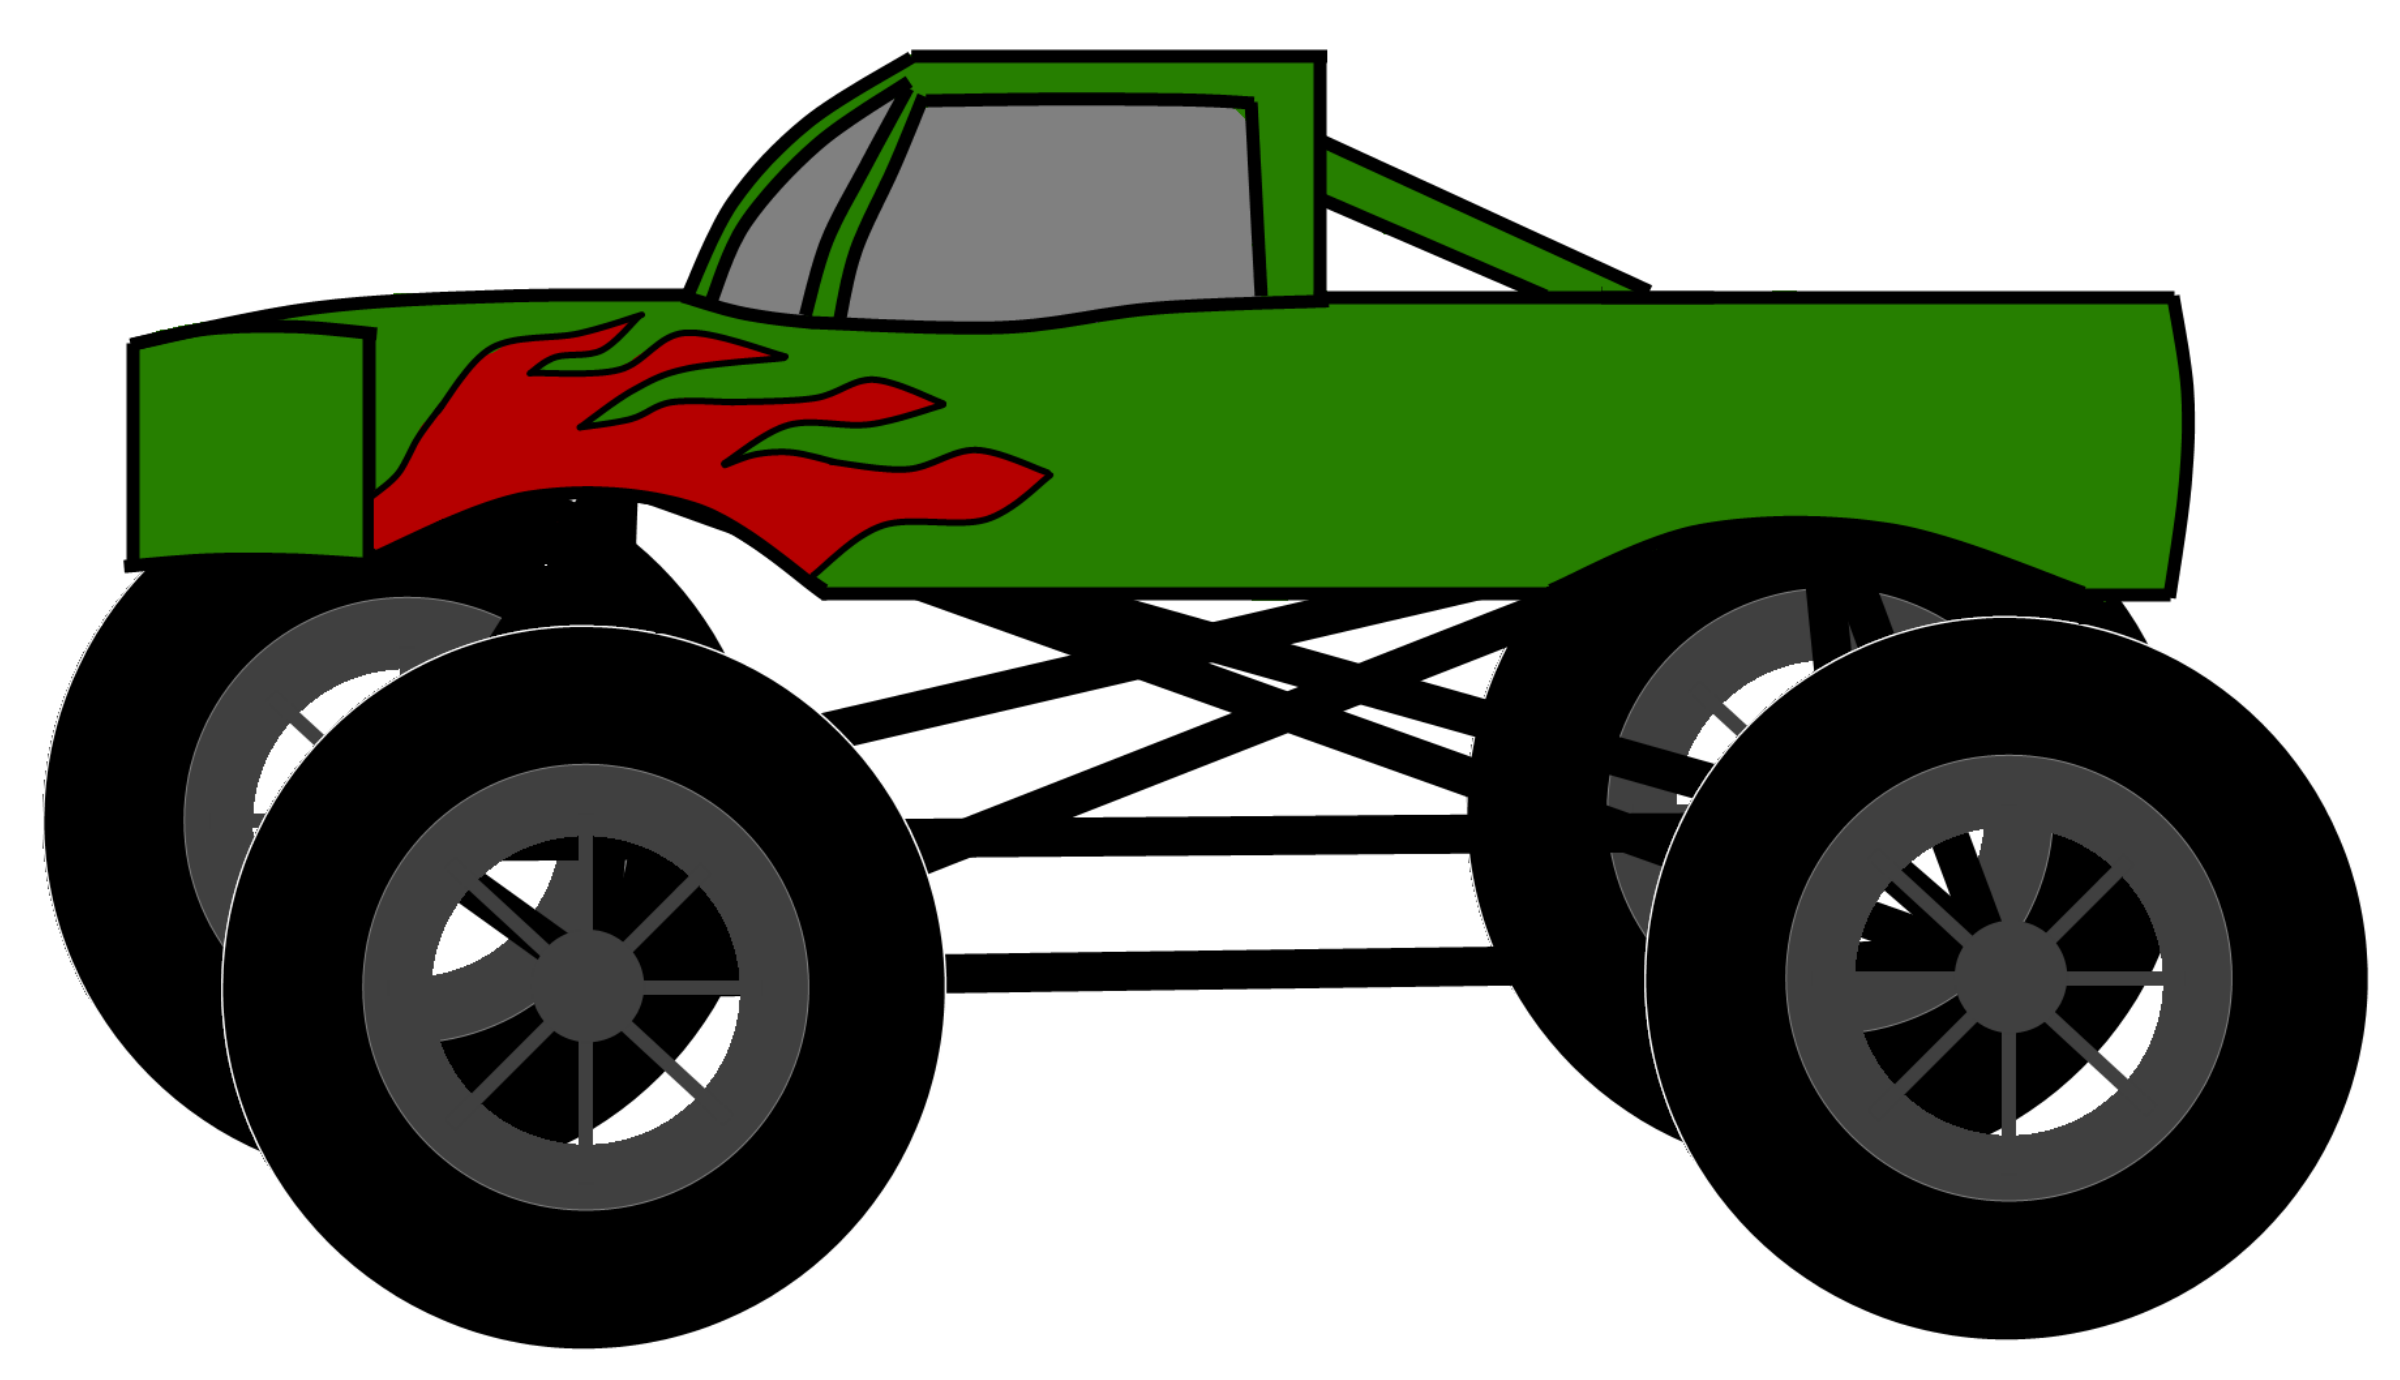 2400x1380 Monster truck truck clipart top view free clipart images image